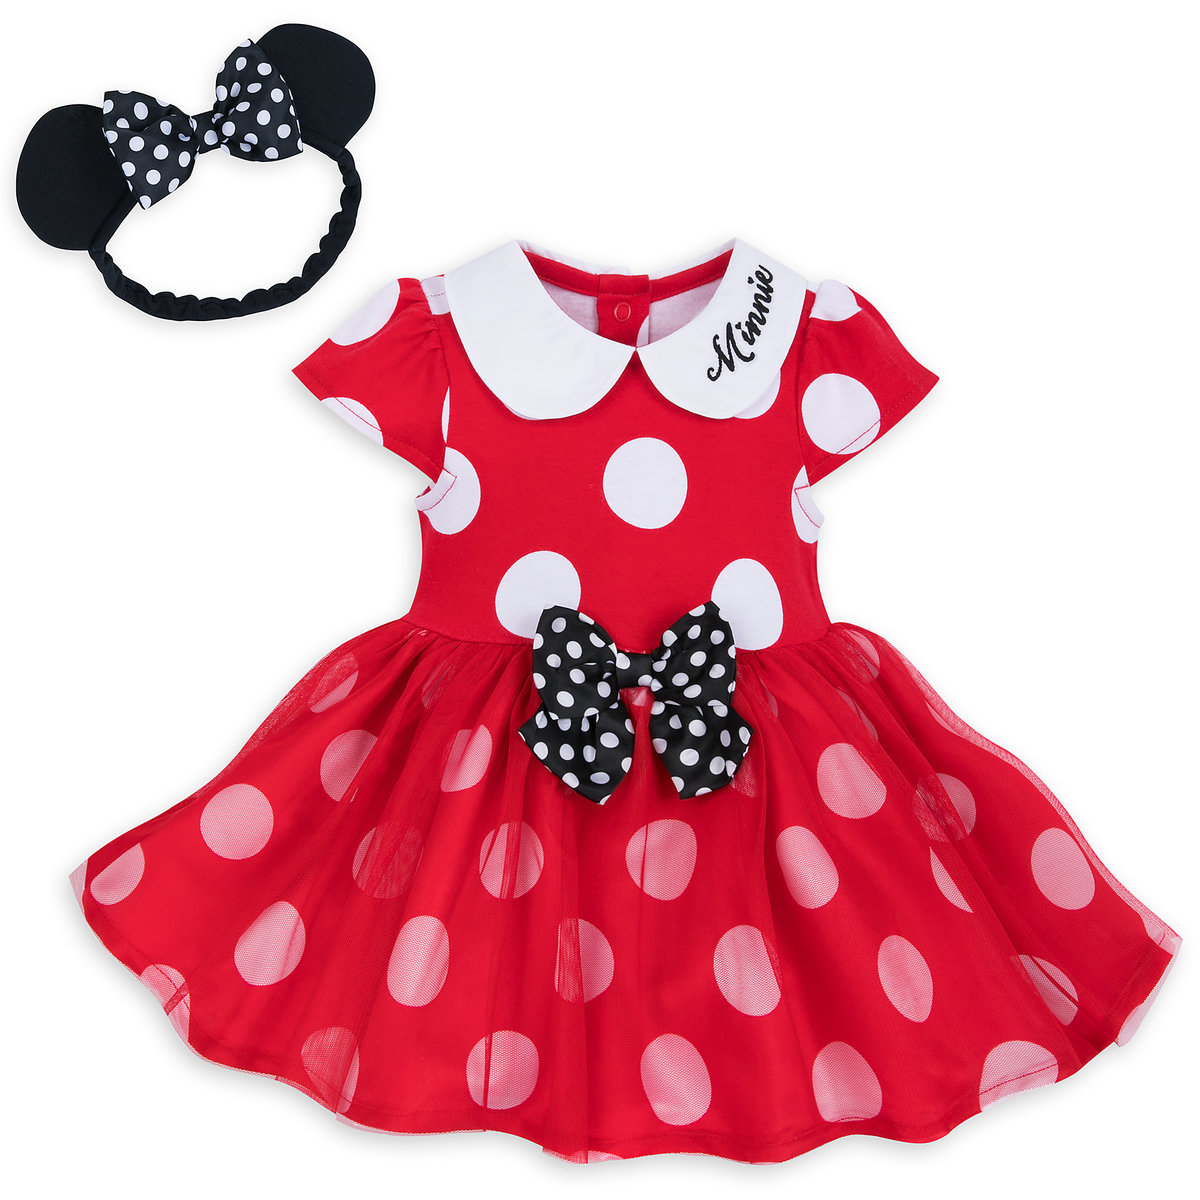 0a32da17b Product Image of Minnie Mouse Costume Bodysuit for Baby - Red # 1